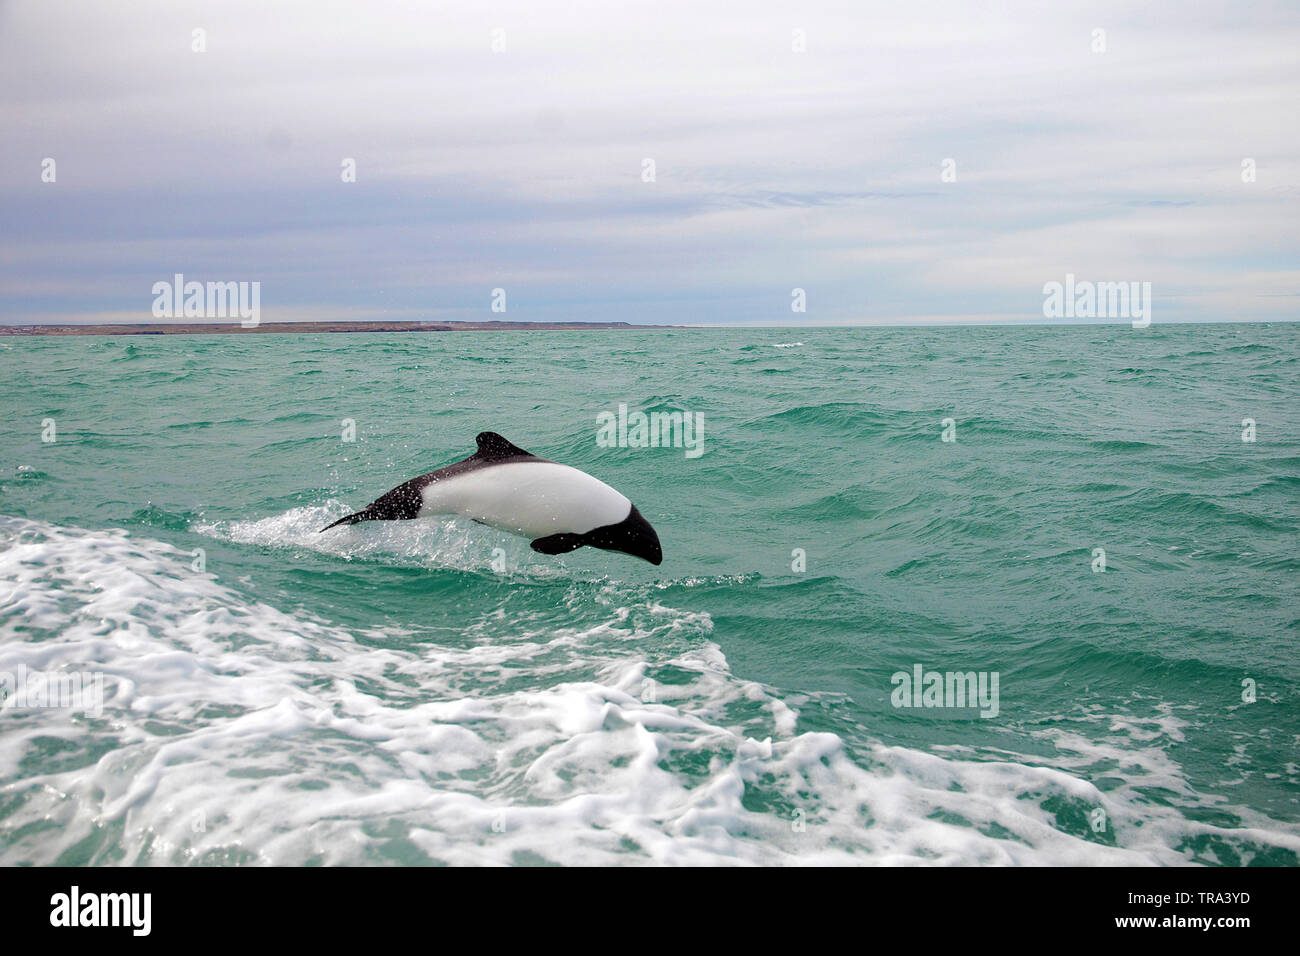 Commerson's Dolphins (Cephalorhynchus commersonii), breaching at surface,  peninsula Valdes, Argentina - Stock Image